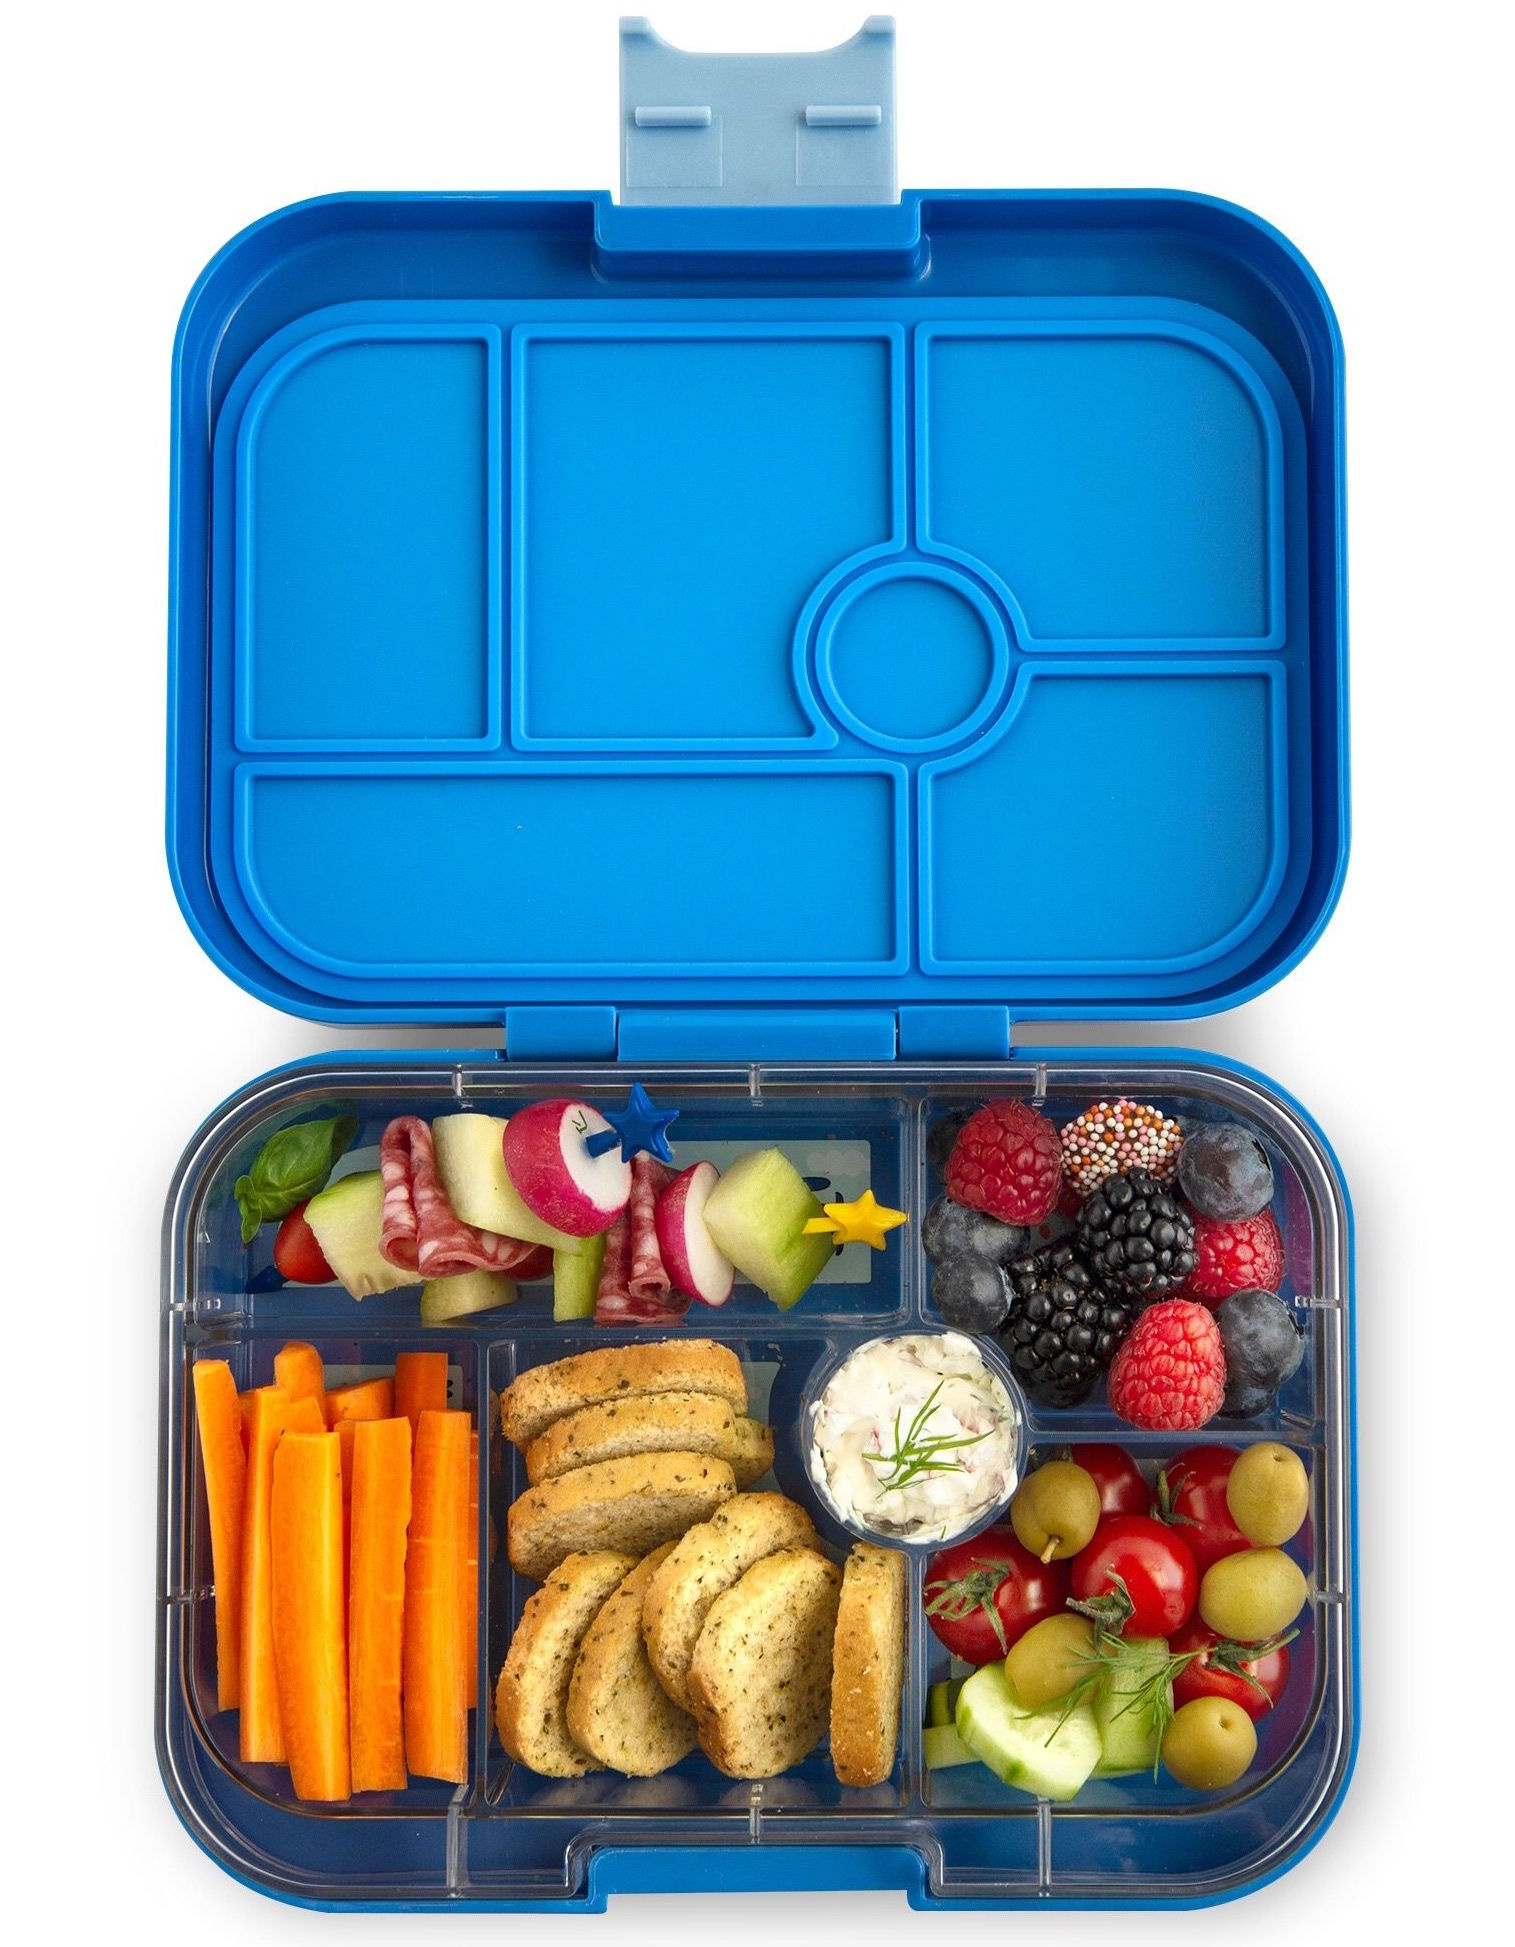 Yumbox Original 6-sections Jodphur blue / Explore tray-2